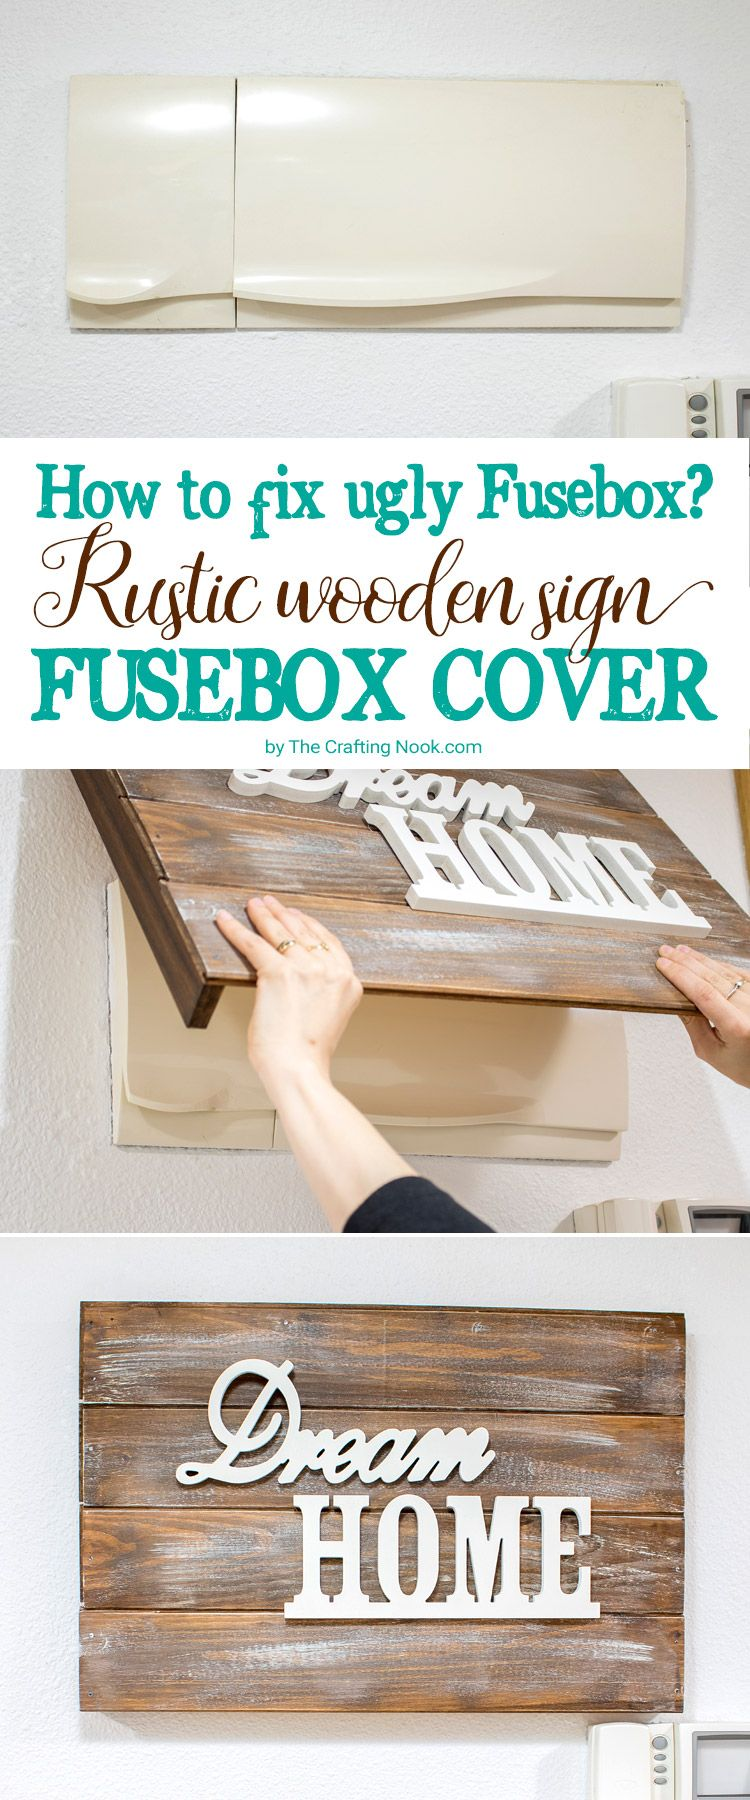 hight resolution of this rustic wooden sign fusebox cover is pretty is easy to make and will fix the visible breaker box problem forever